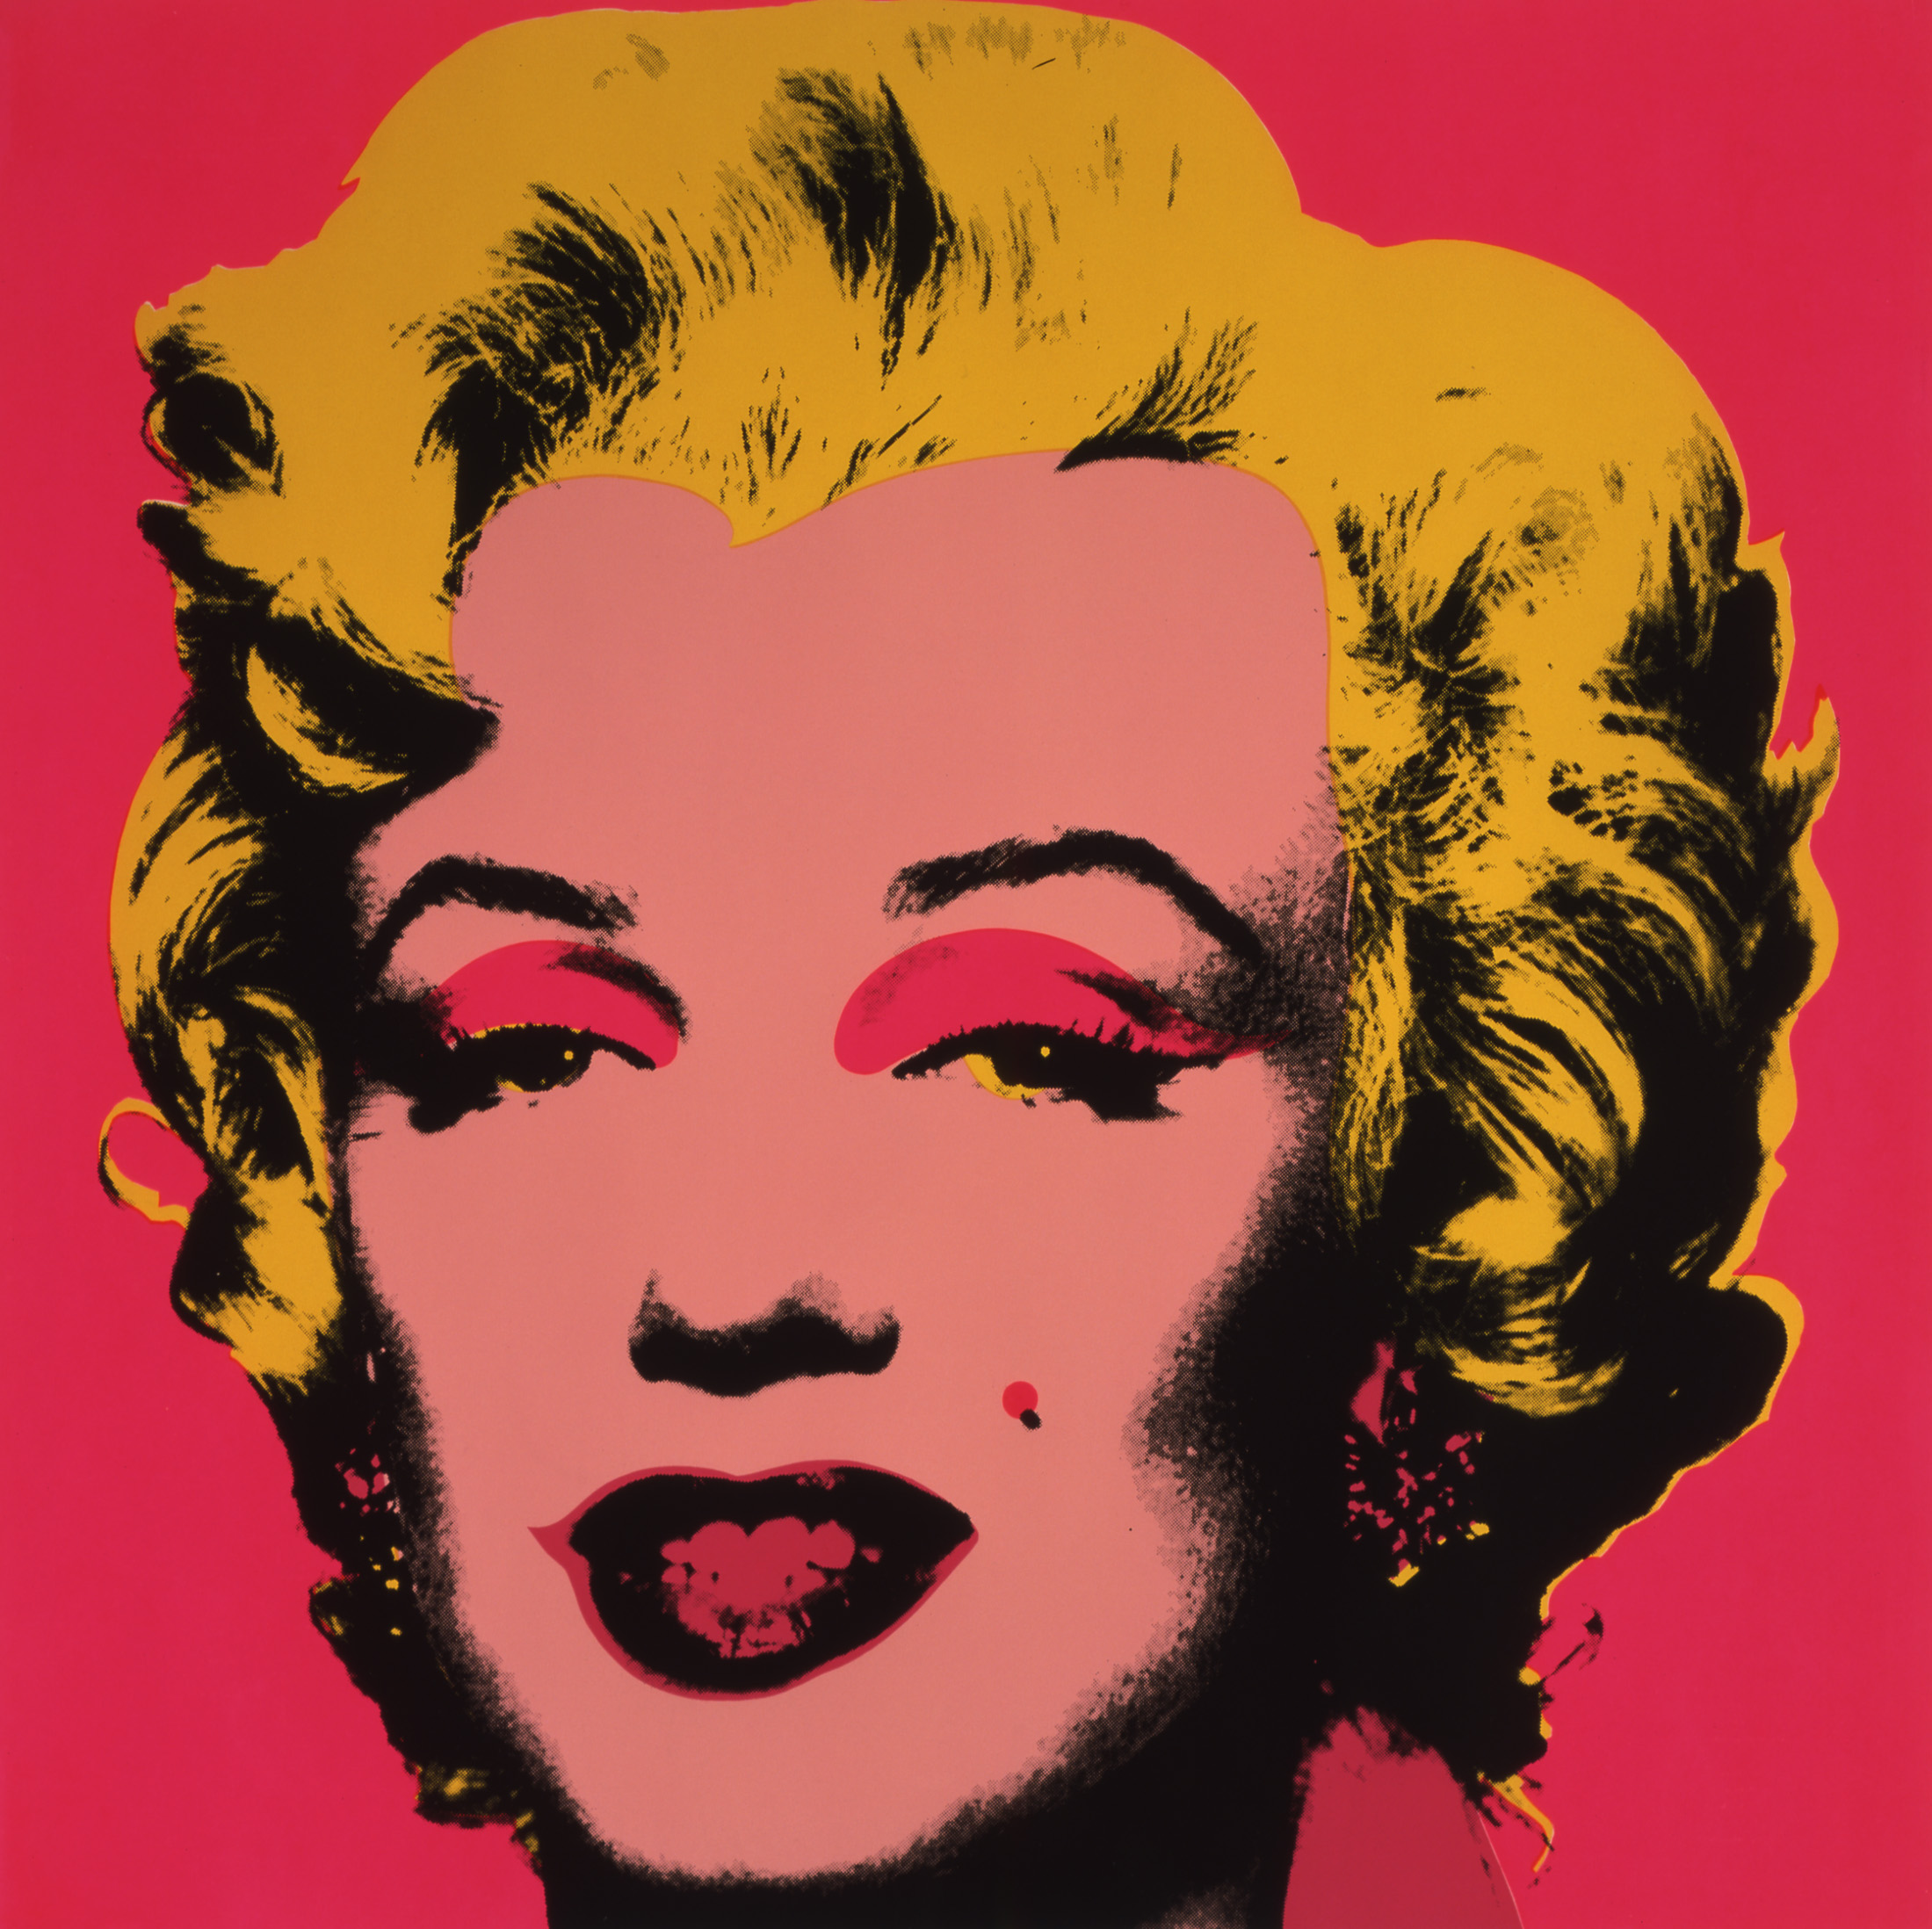 Andy Warhol,  Marilyn , 1967, screen print on paper. The Andy Warhol Museum, Pittsburgh; Founding Collection, Contribution The Andy Warhol Foundation for the Visual Arts, Inc. L1998.1.10.  © The Andy Warhol Foundation for the Visual Arts, Inc / Artists Rights Society (ARS), New York.